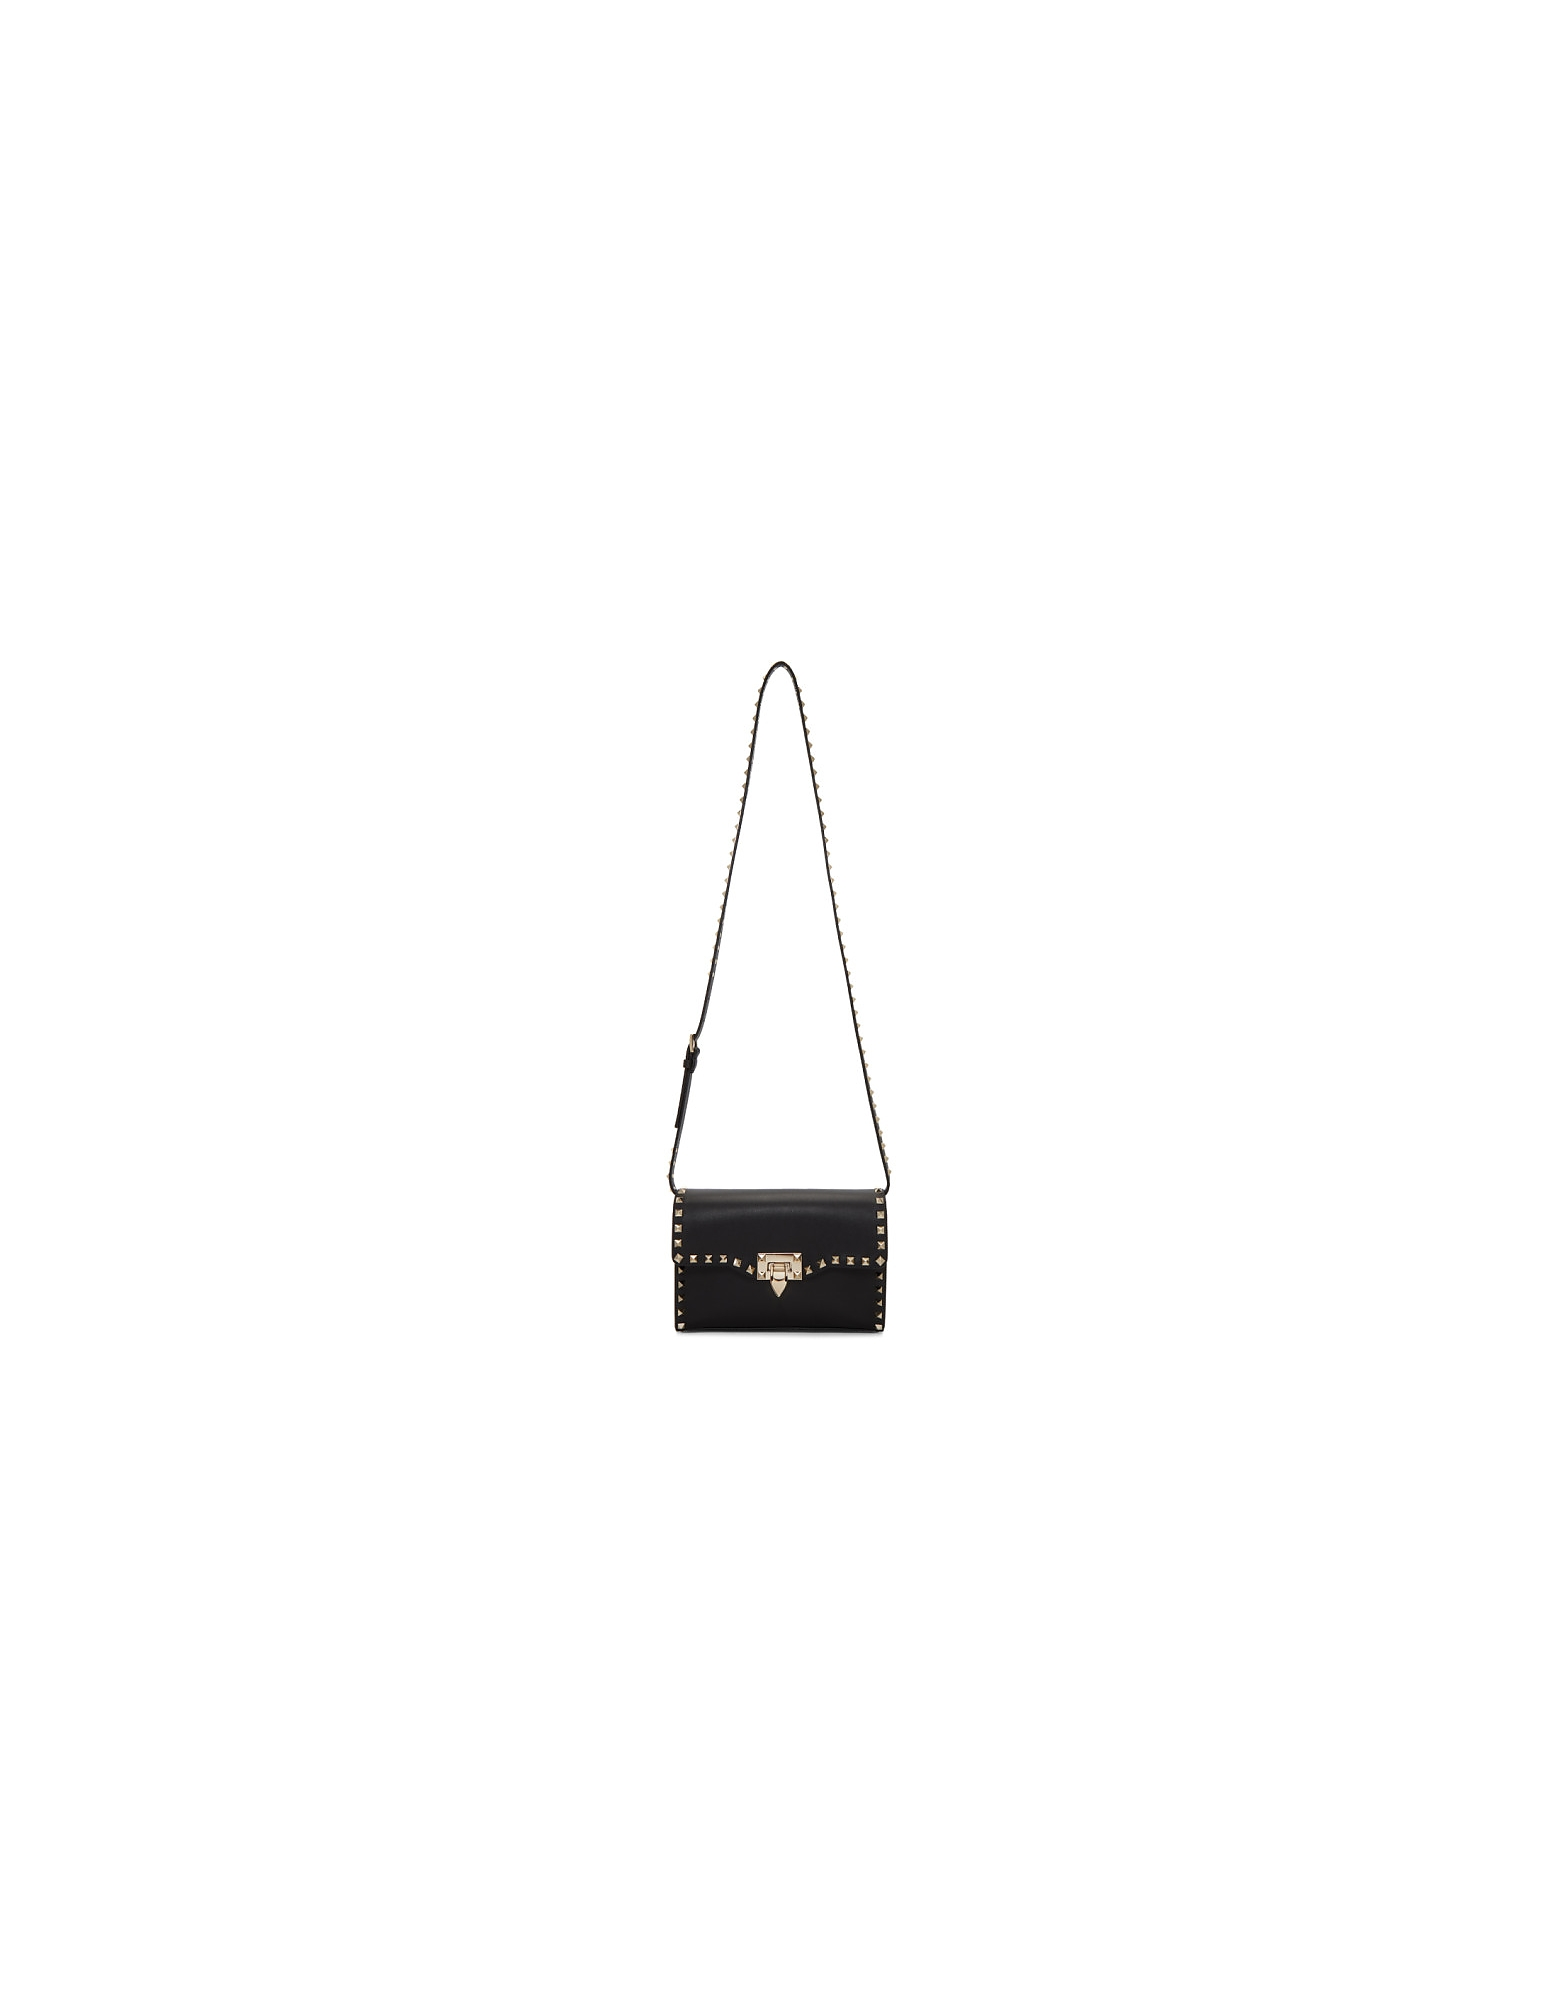 Valentino Designer Handbags, Black Valentino Garavani Medium Rockstud Flap Bag